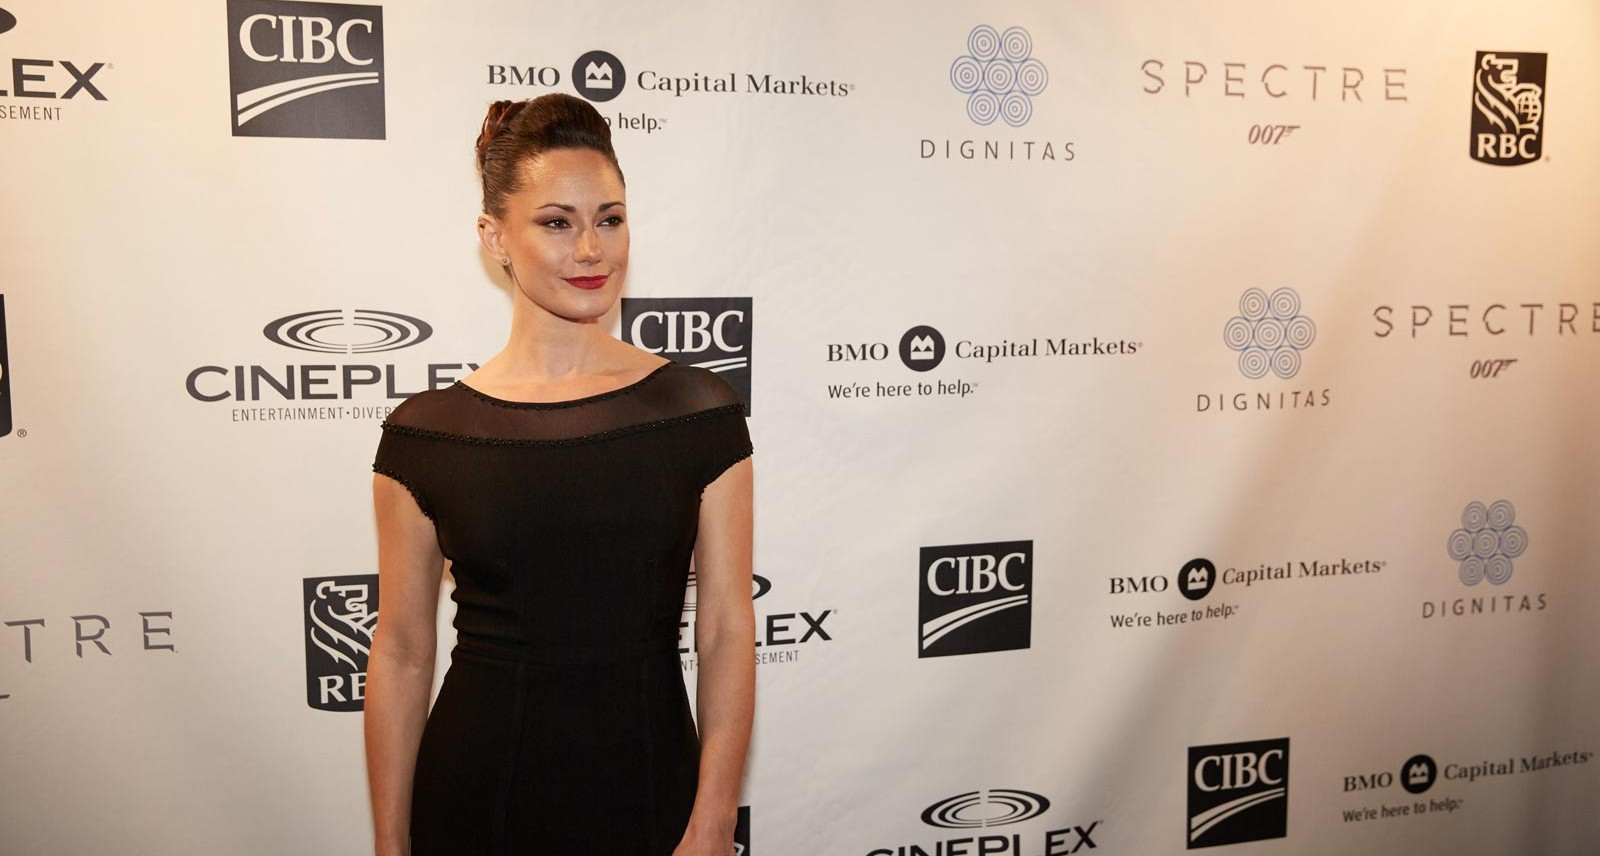 Man About Town: Dignitas International's 'Spectre' Screening